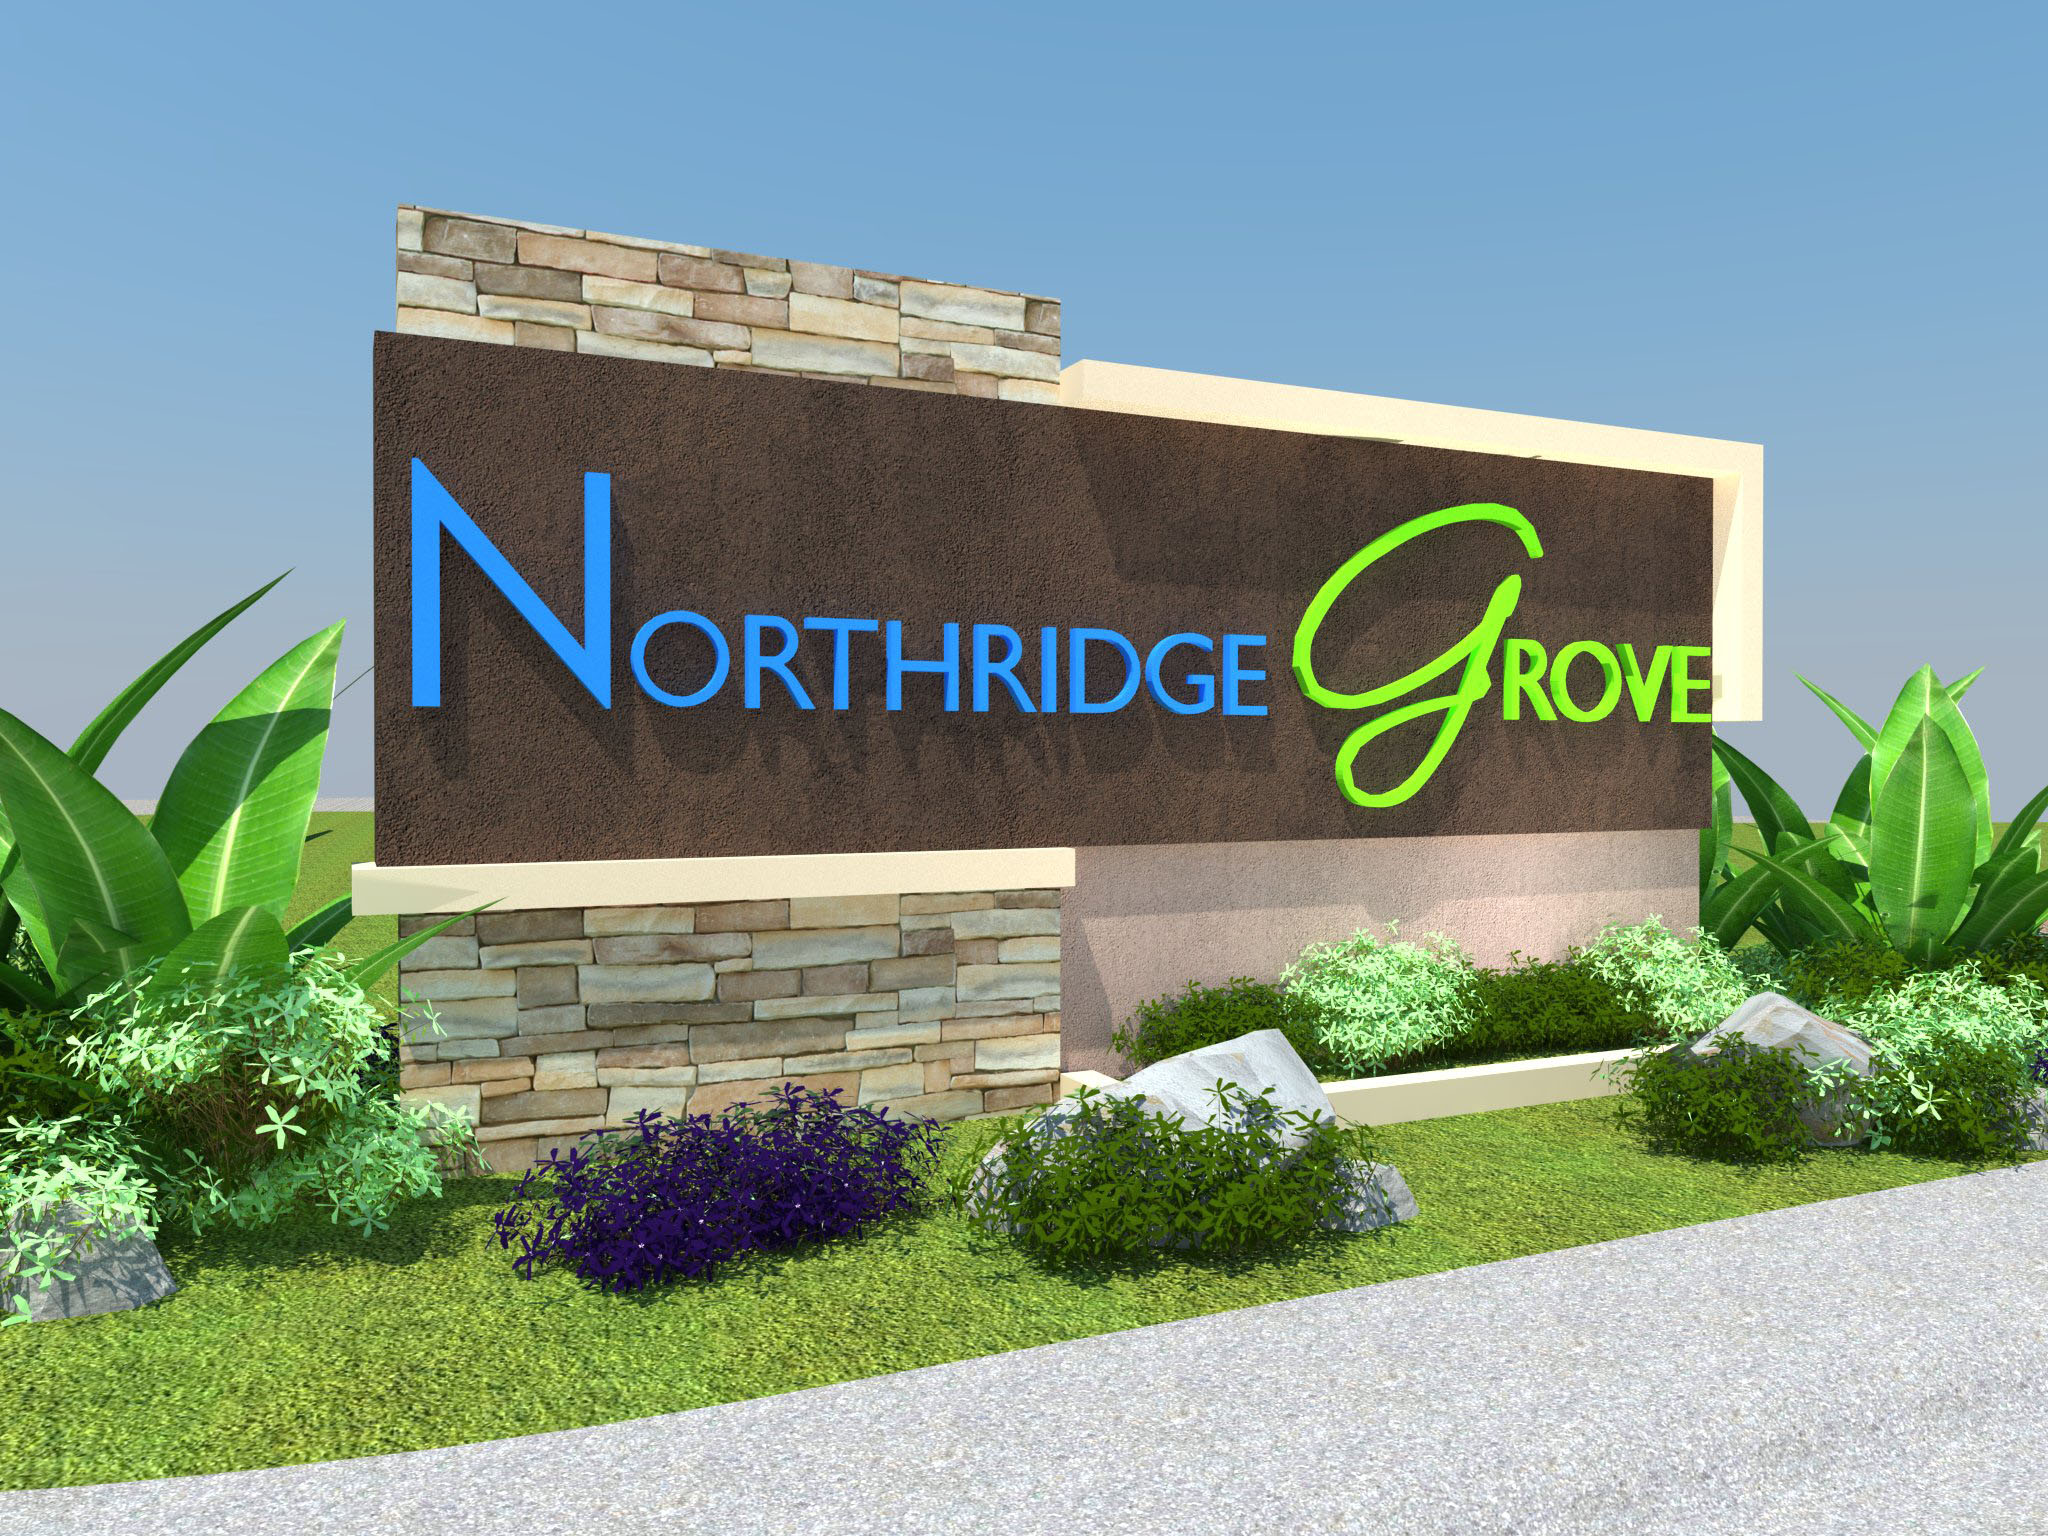 Northridge Grove - Northridge Grove